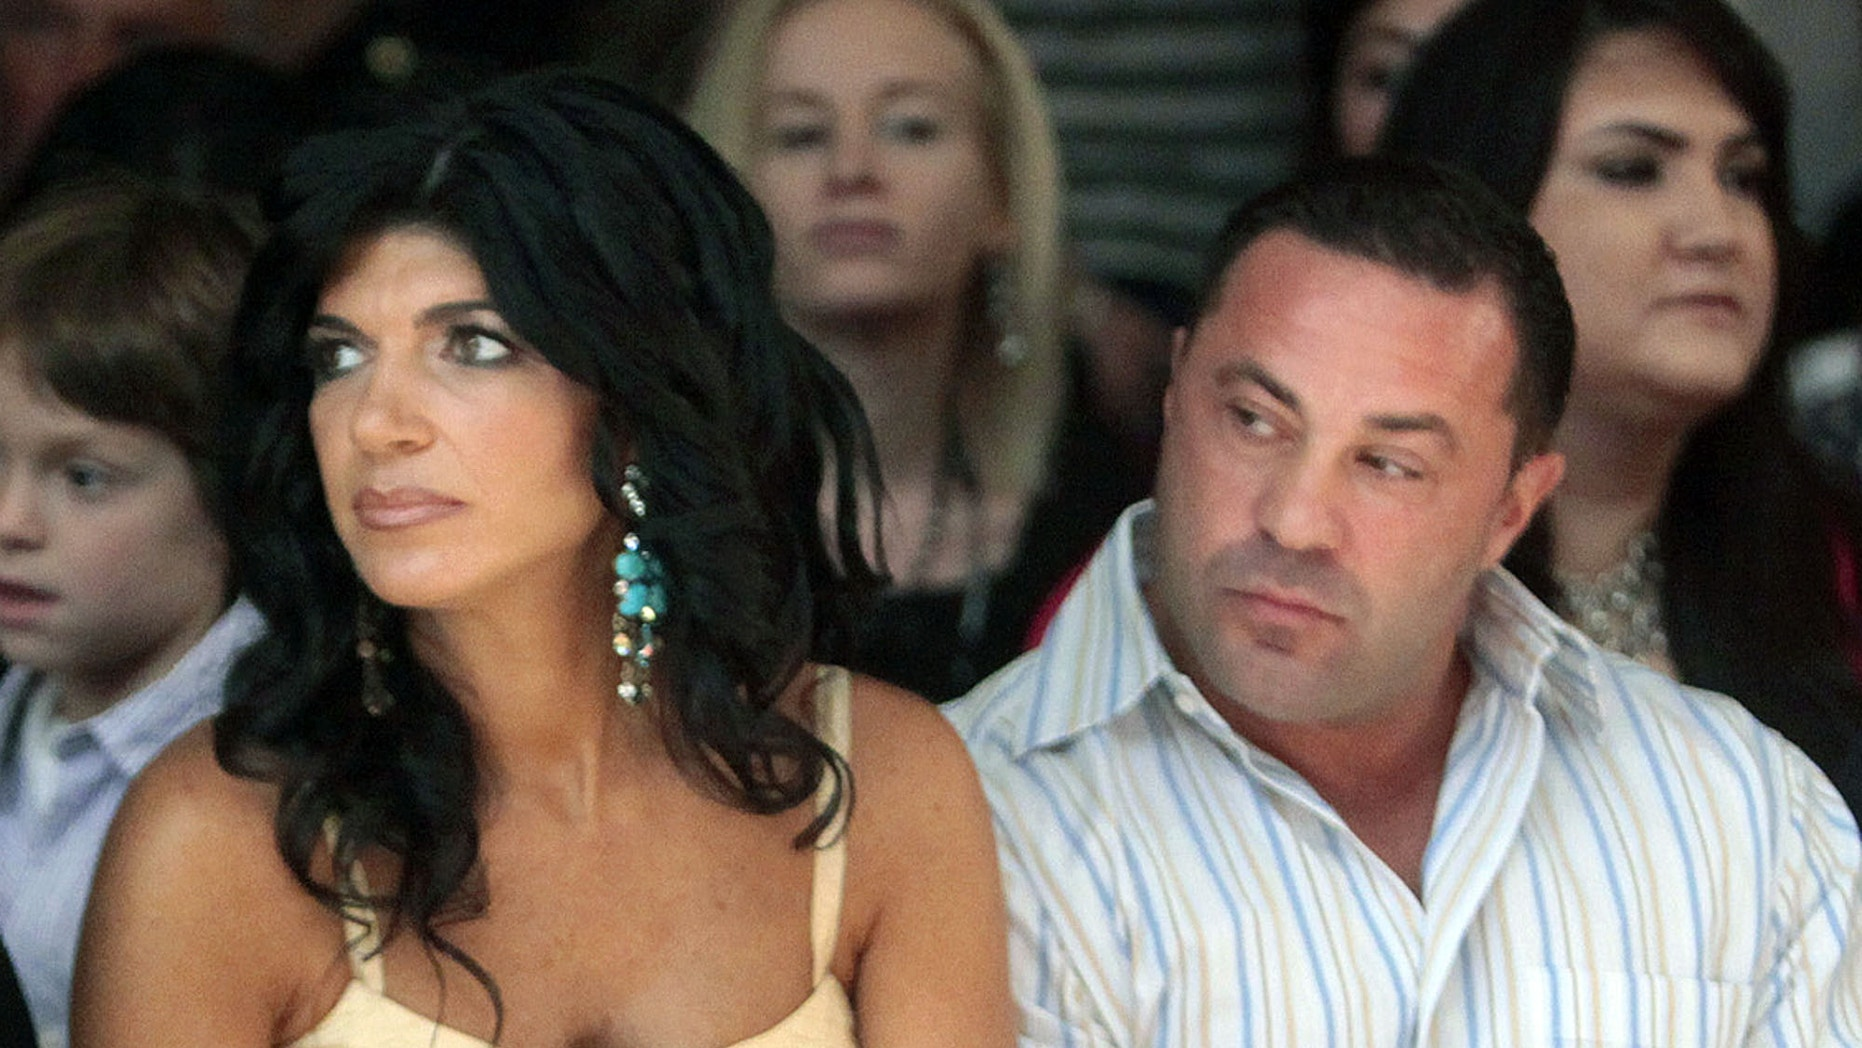 """This Sept. 13, 2009 file photo originally released by Oral-B Pulsonic shows """"Real Housewives of New Jersey"""" stars, Teresa Giudice, left, and her husband Joe Giudice at the Caravan Fashion Show in New York. Teresa and Giuseppe """"Joe"""" Giudice were charged in a 39-count indictment handed up Monday, July 29, 2013, in Newark, N.J."""